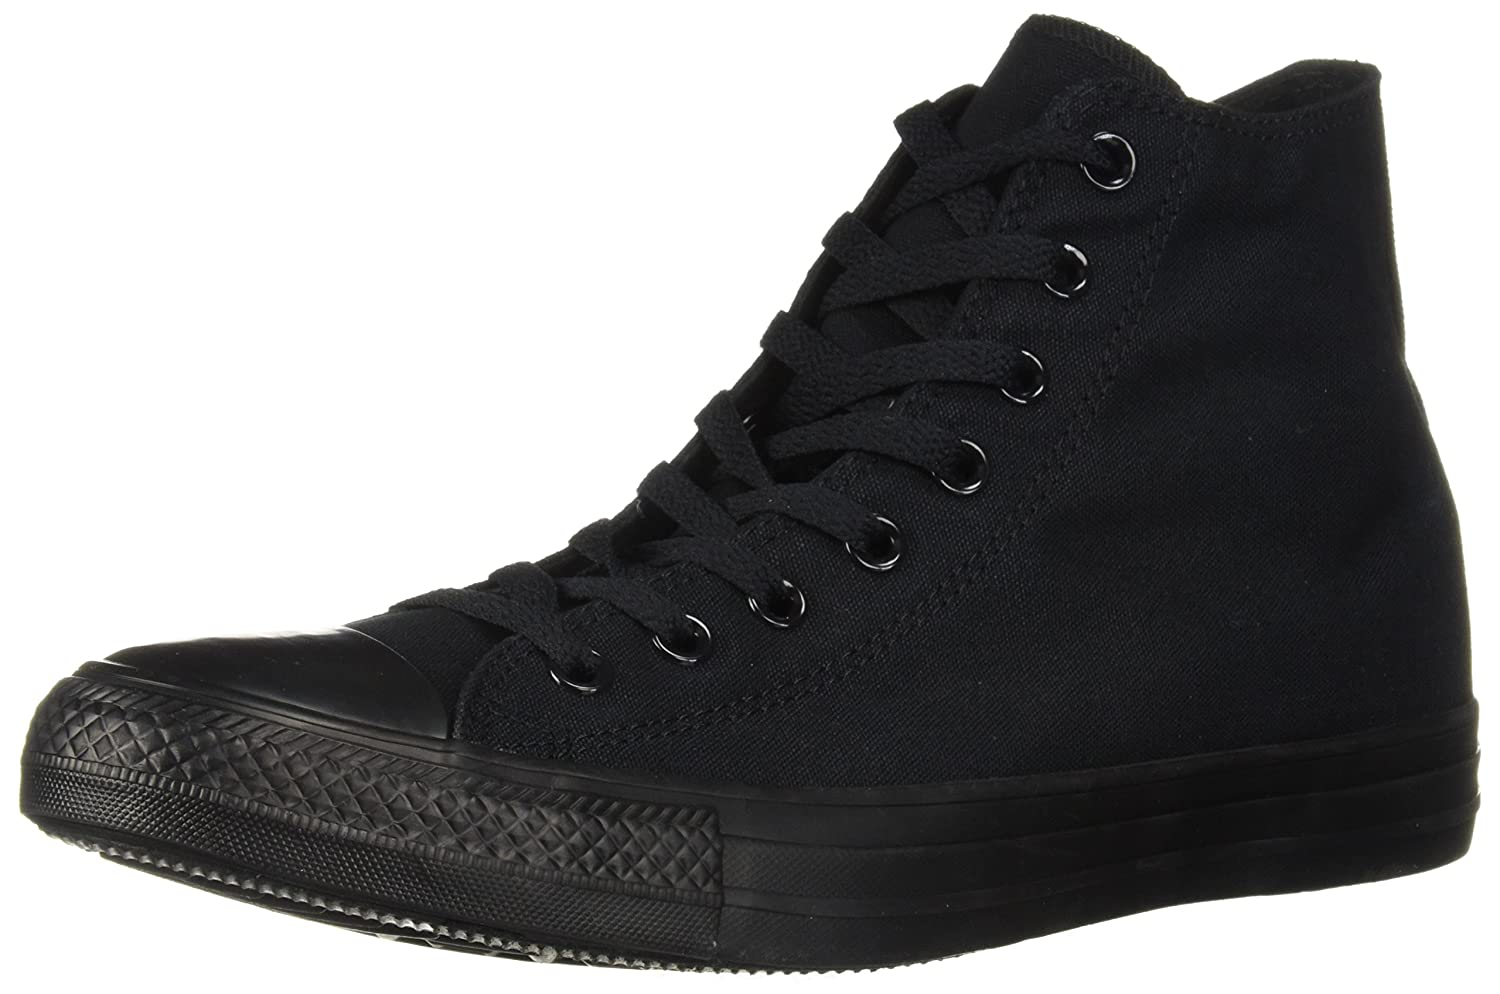 Converse AS Hi Can charcoal 1J793 Unisex-Erwachsene Sneaker  12 D(M) US|Schwarz (Black Monochrome)